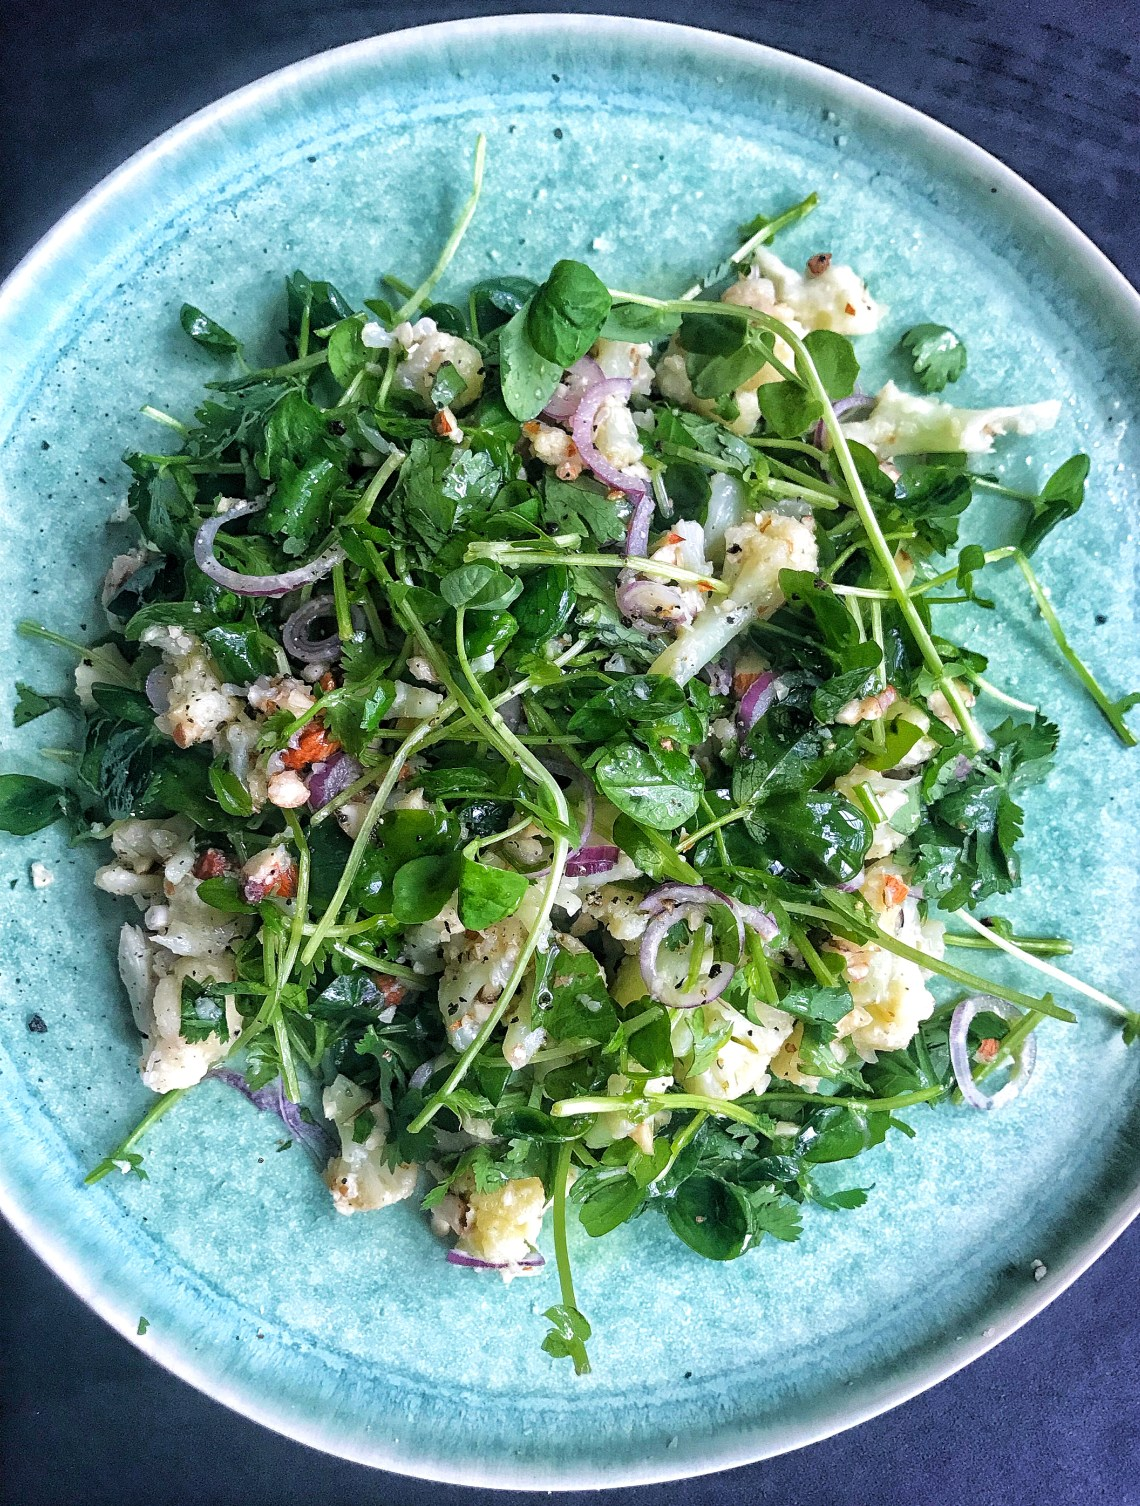 Cauliflower feel good salad - roasted cauliflower, microgreens, almonds, red onion and cilantro